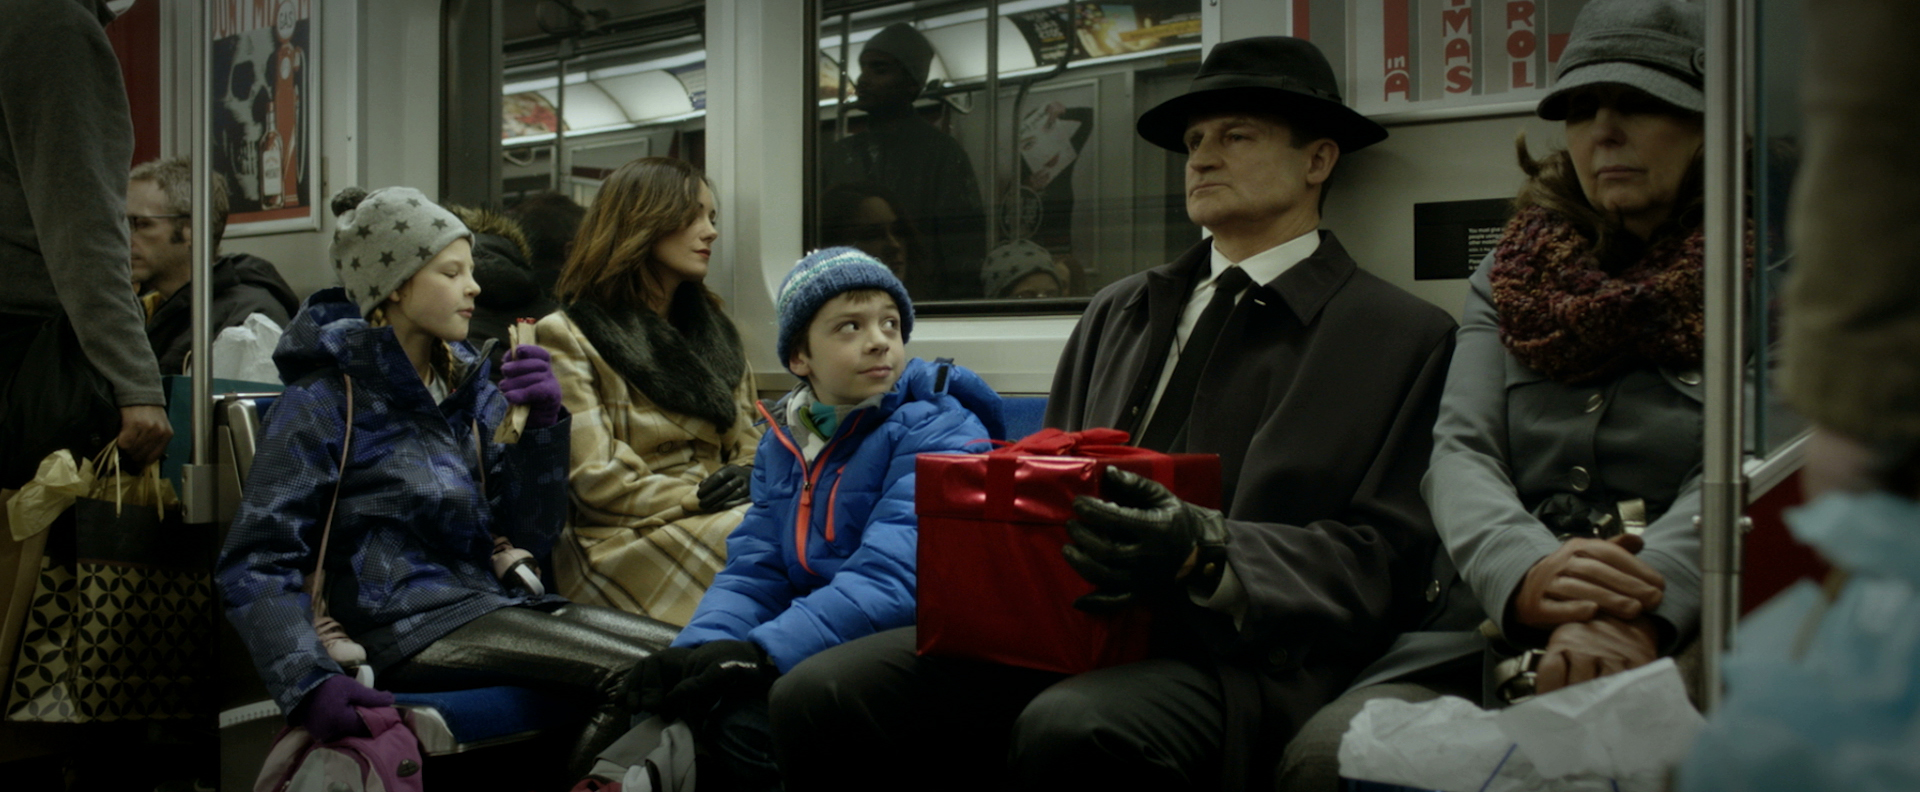 SYNOPSIS:     After peering into a shiny red gift box on a commuter train, seven-year-old Danny Jacobs inexplicably stops eating. When his father and sister also begin to waste away, Danny's mother Susan struggles to make the connection between herself, her dying family and the mysterious box before it's too late.